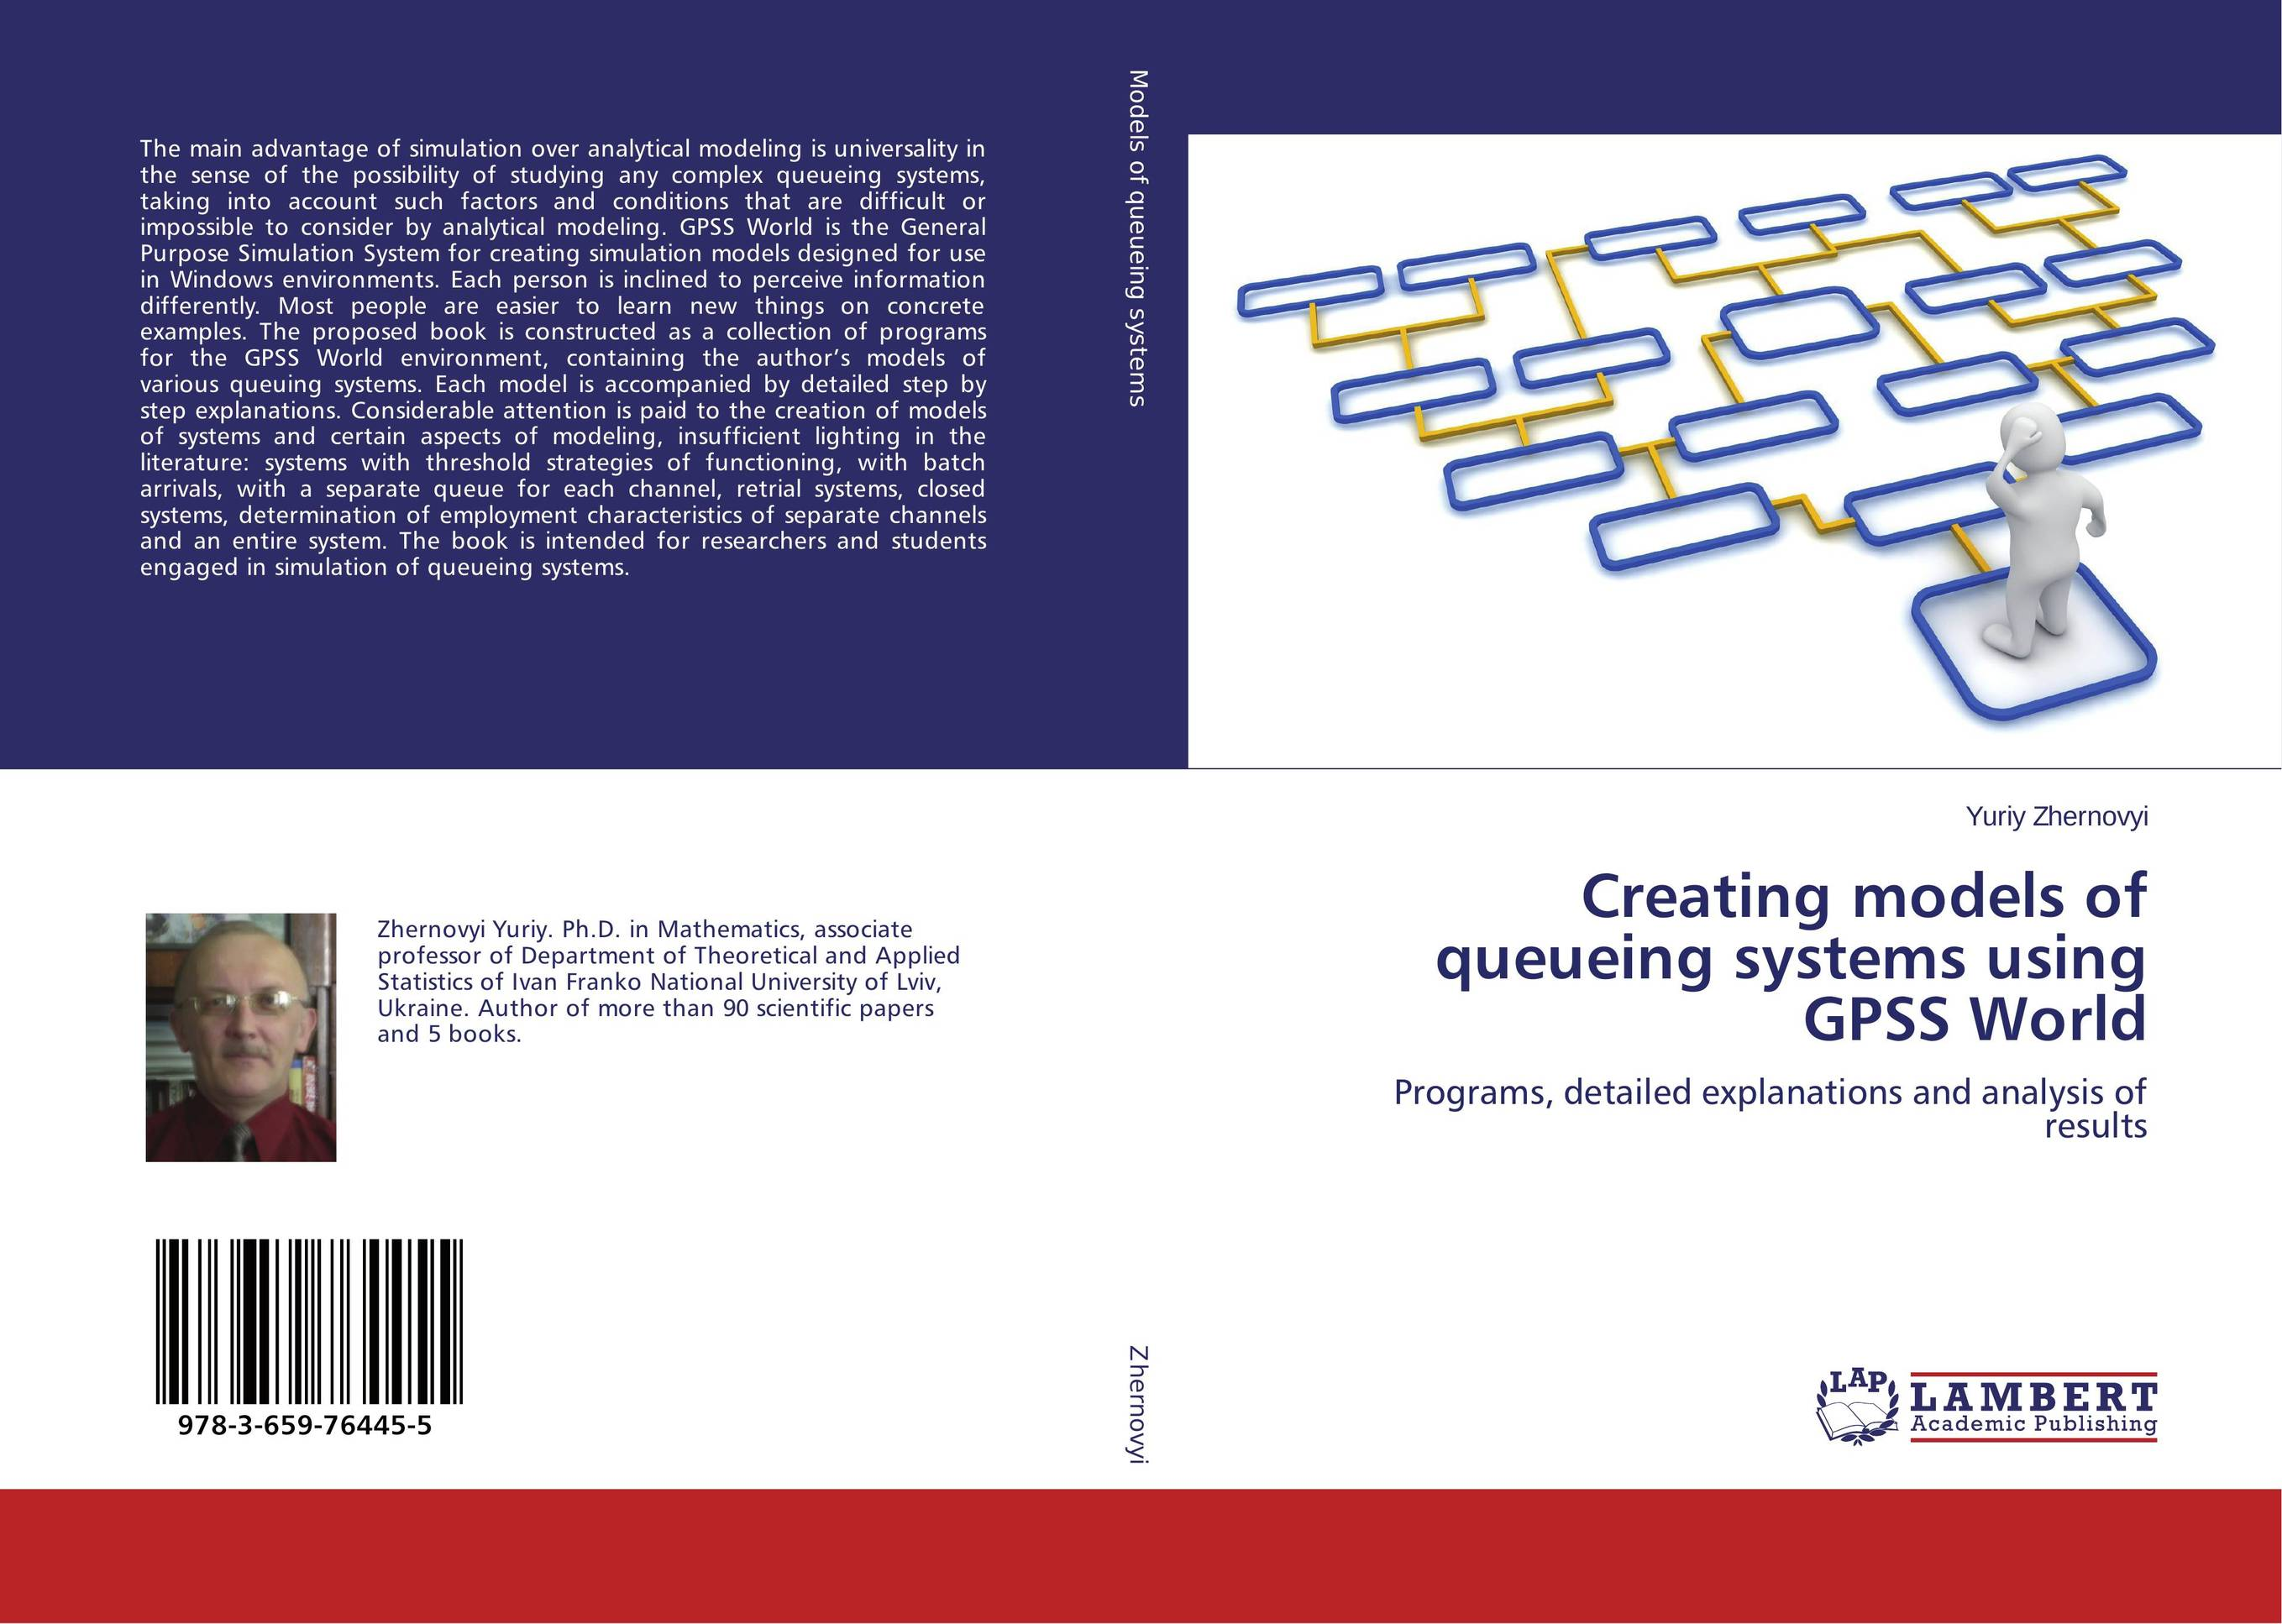 Creating models of queueing systems using GPSS World thomas j schriber an introduction to simulation using gpss h